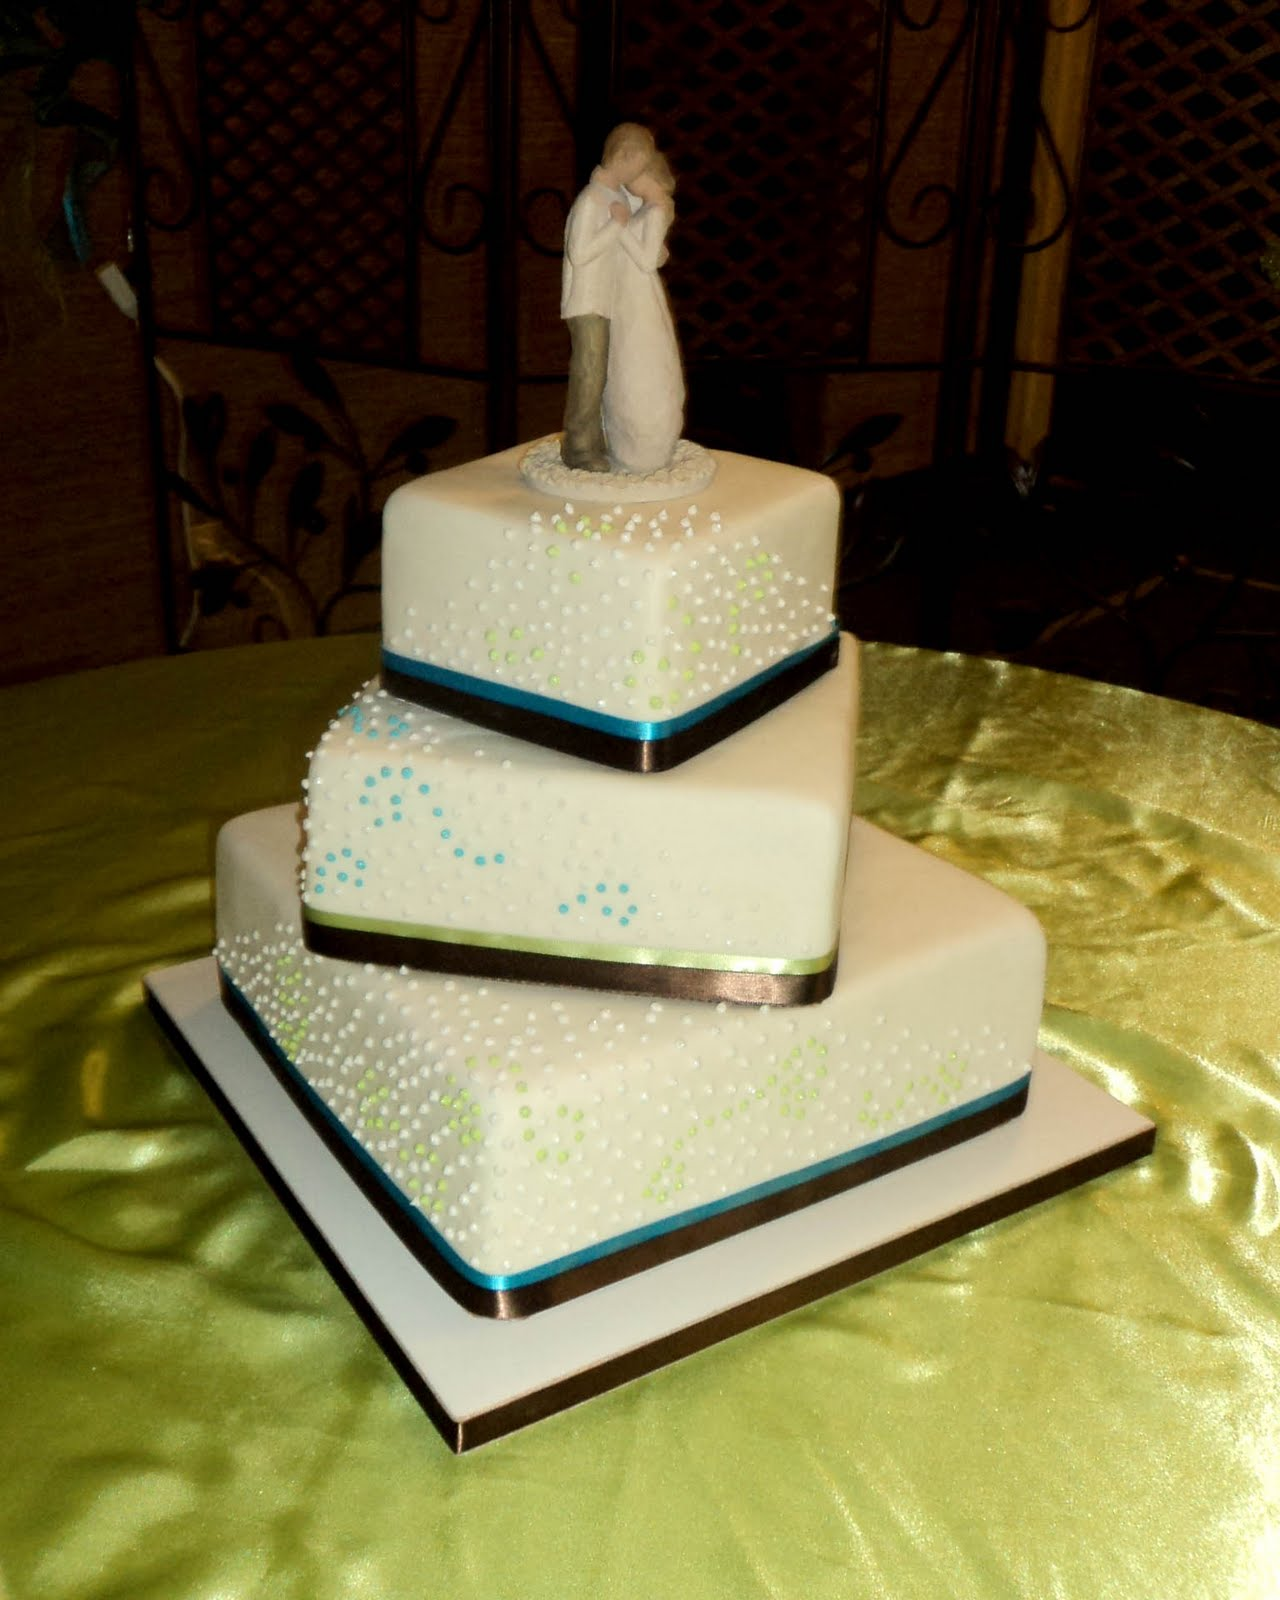 Delectable Cakes Blue and Green Wedding Cake